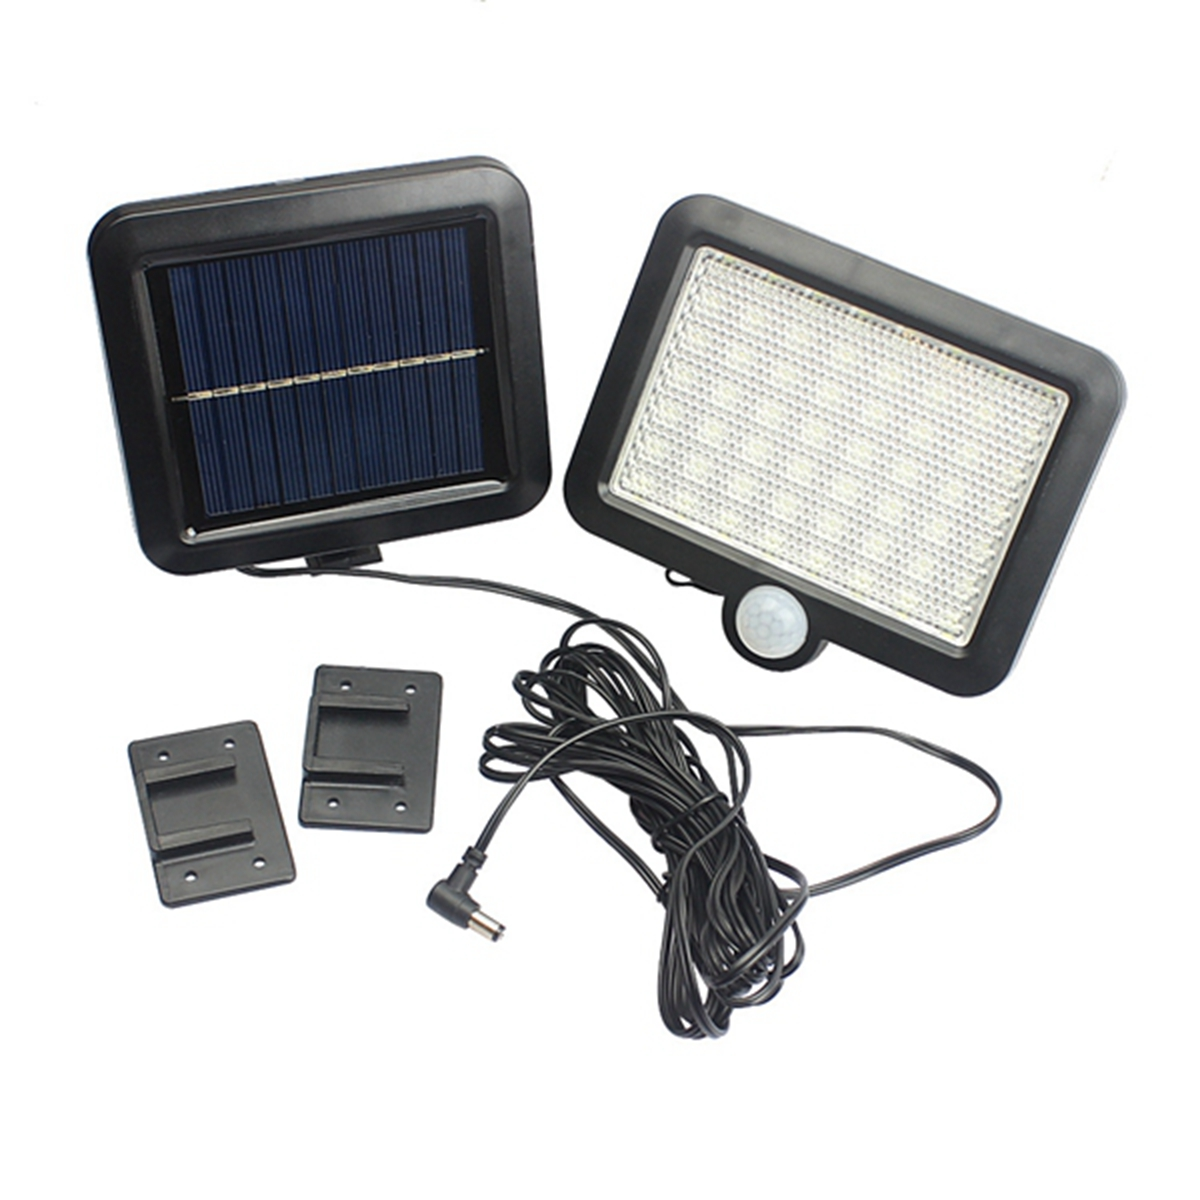 все цены на 56 LED Solar Light Outdoor LED Solar Powered Garden Lights PIR Body Motion Sensor Solar Floodlights Spotlights Wall Lamp в интернете